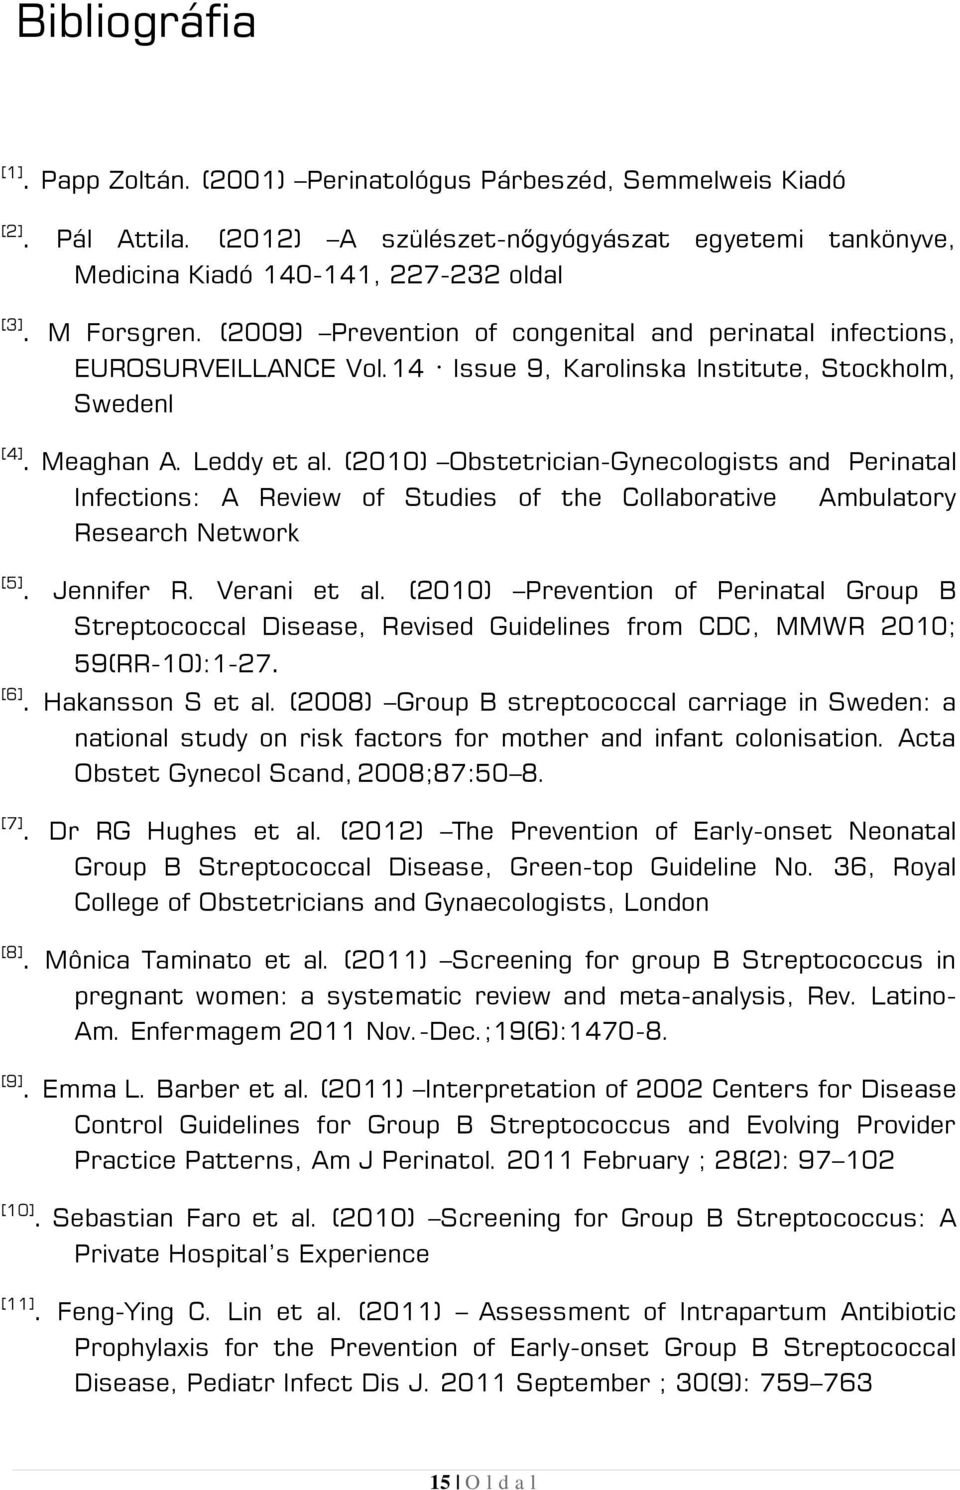 (2010) Obstetrician-Gynecologists and Perinatal Infections: A Review of Studies of the Collaborative Research Network Ambulatory [5]. Jennifer R. Verani et al.